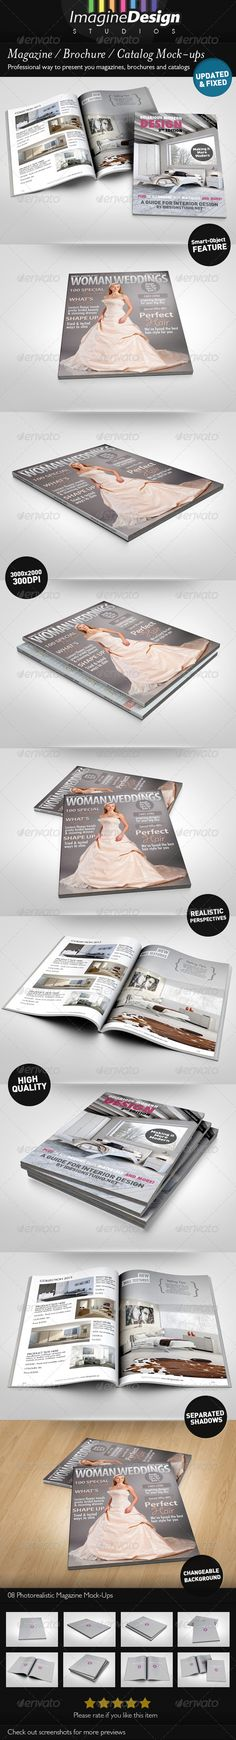 Photorealistic Brochure / Magazine Mock-up - GraphicRiver Item for Sale